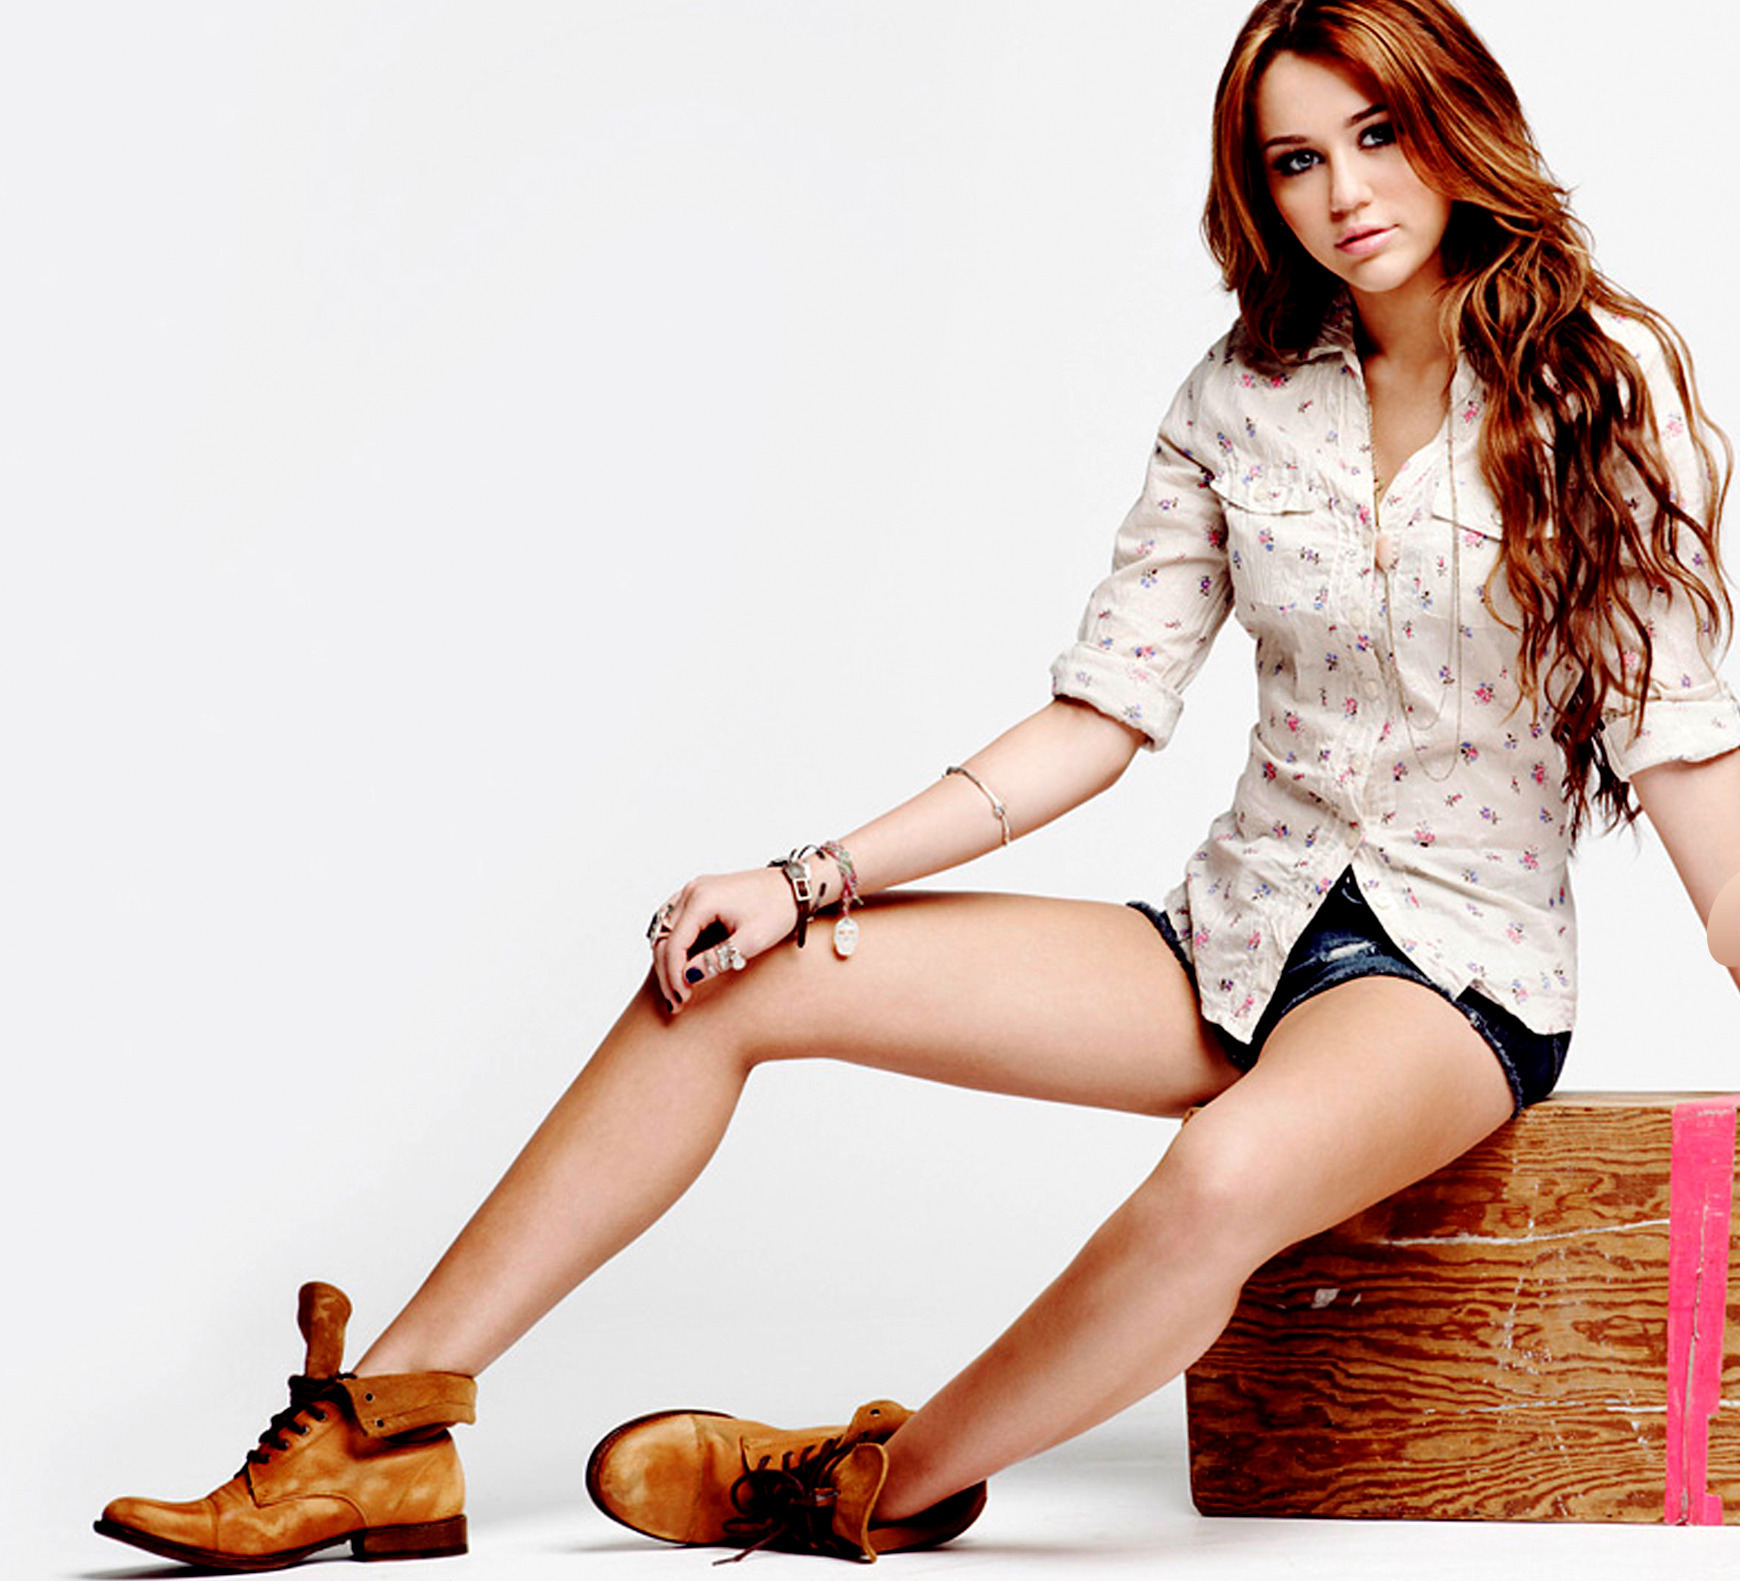 Miley Cyrus MC Wallpaper 1740x1581